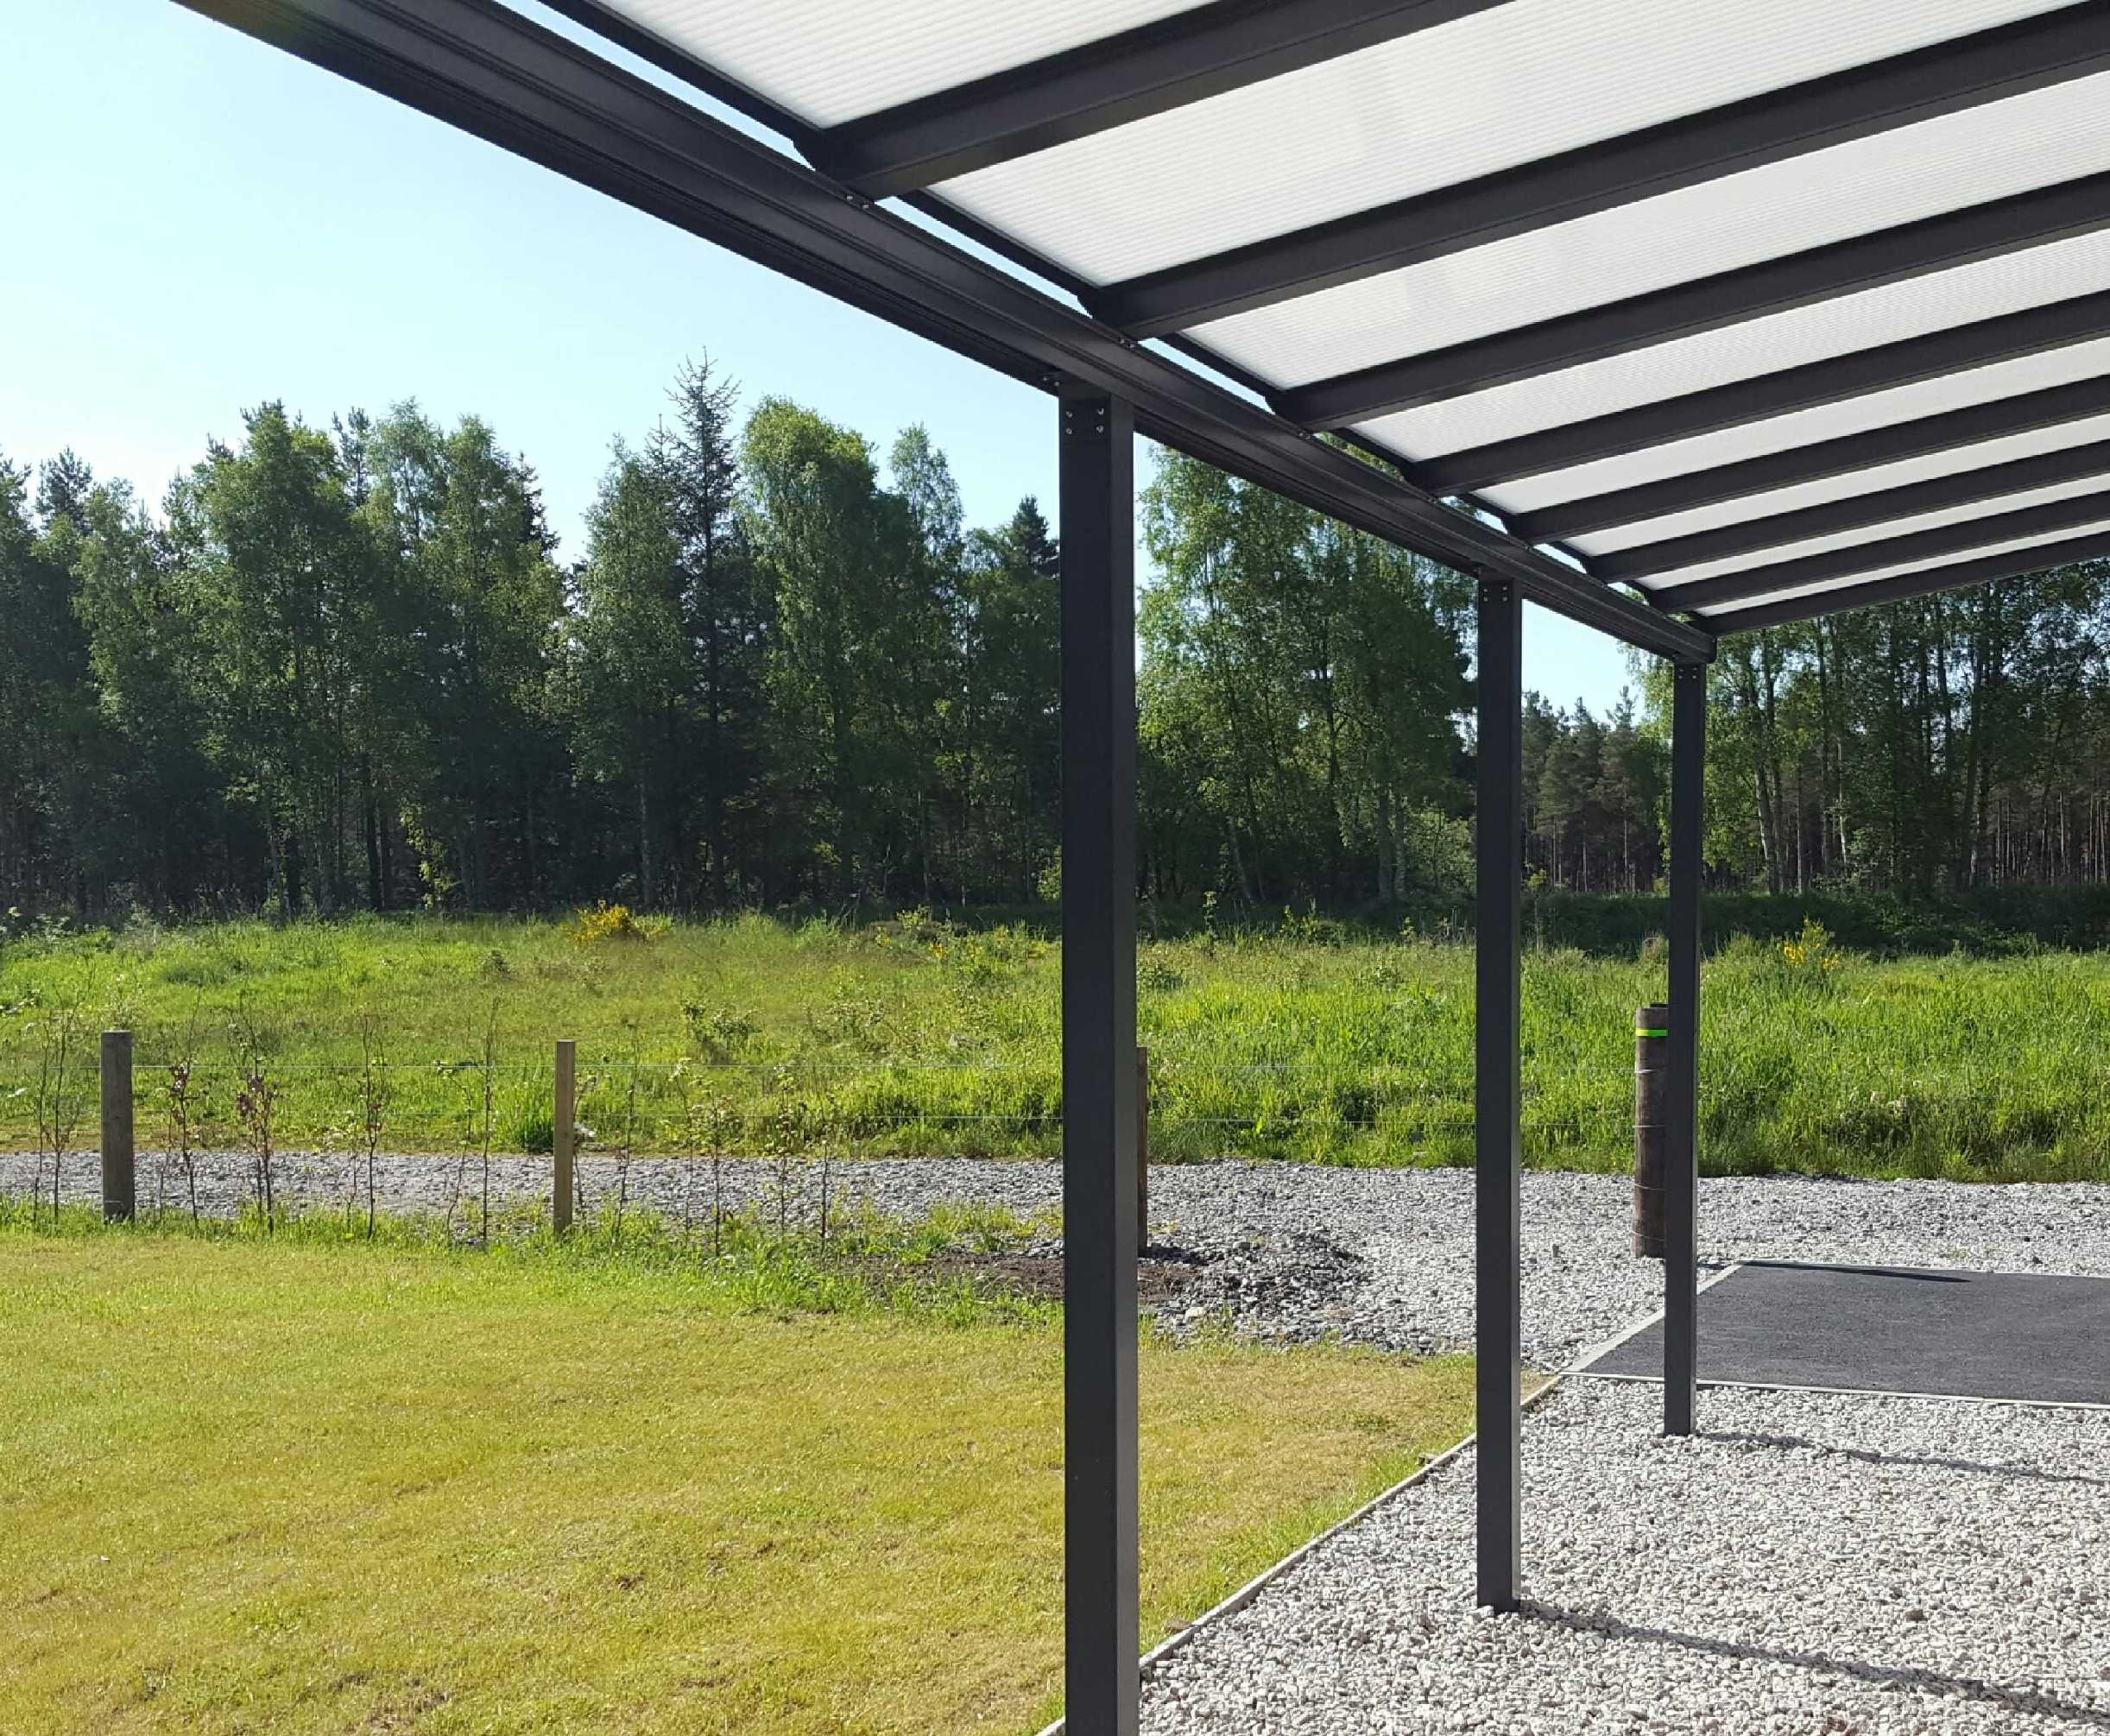 Omega Smart Lean-To Canopy, Anthracite Grey, 16mm Polycarbonate Glazing - 6.0m (W) x 4.5m (P), (3) Supporting Posts